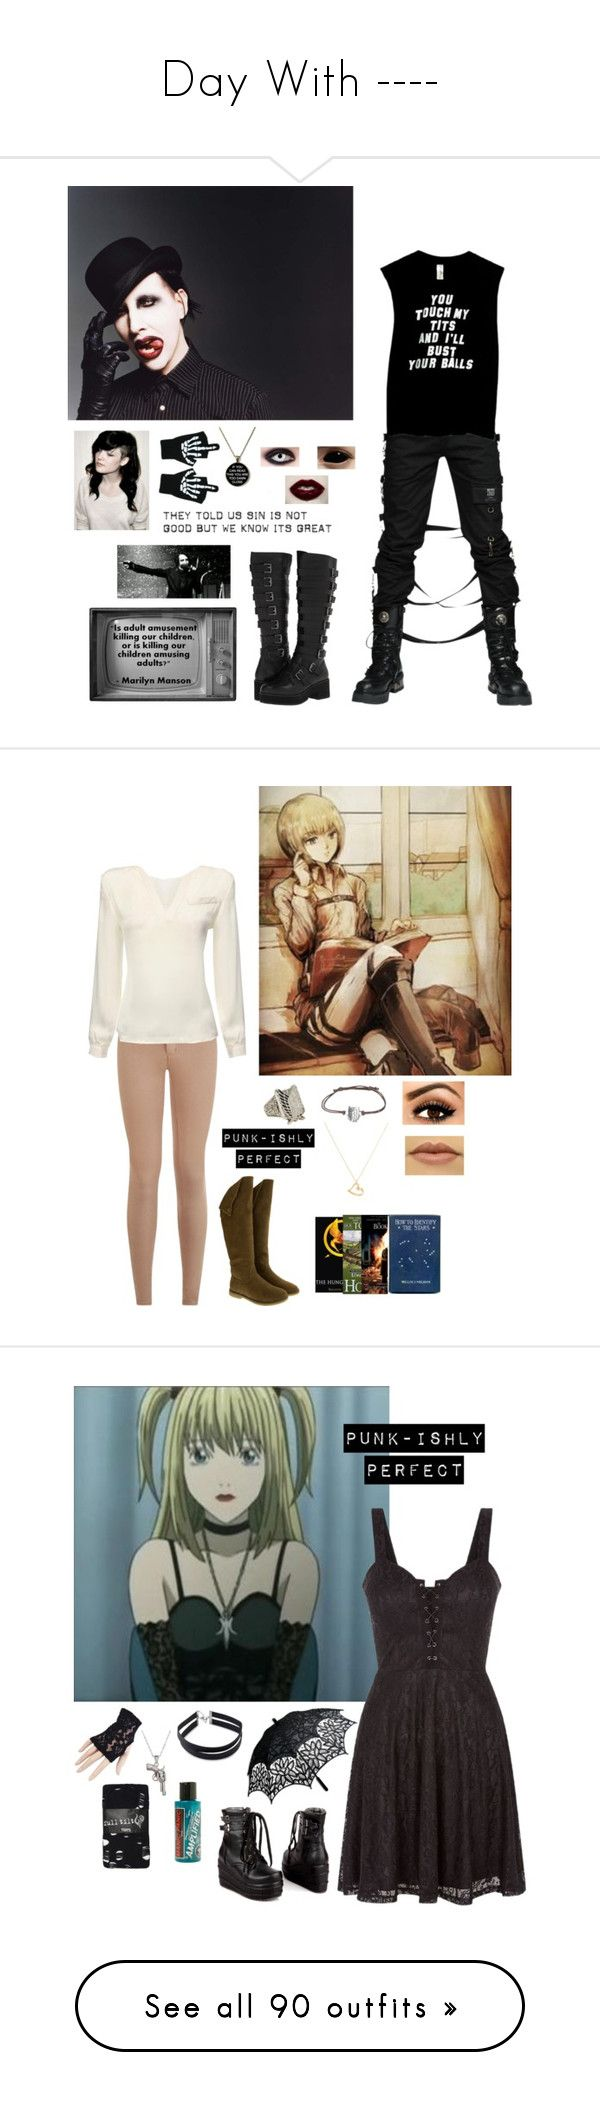 """""""Day With ----"""" by punkishly-perfect-in-every-way ❤ liked on Polyvore featuring Shellys, Keddo, Hot Topic, Argento Vivo, Misa, JY Shoes, Forever 21, La Preciosa, Manic Panic NYC and Full Tilt"""